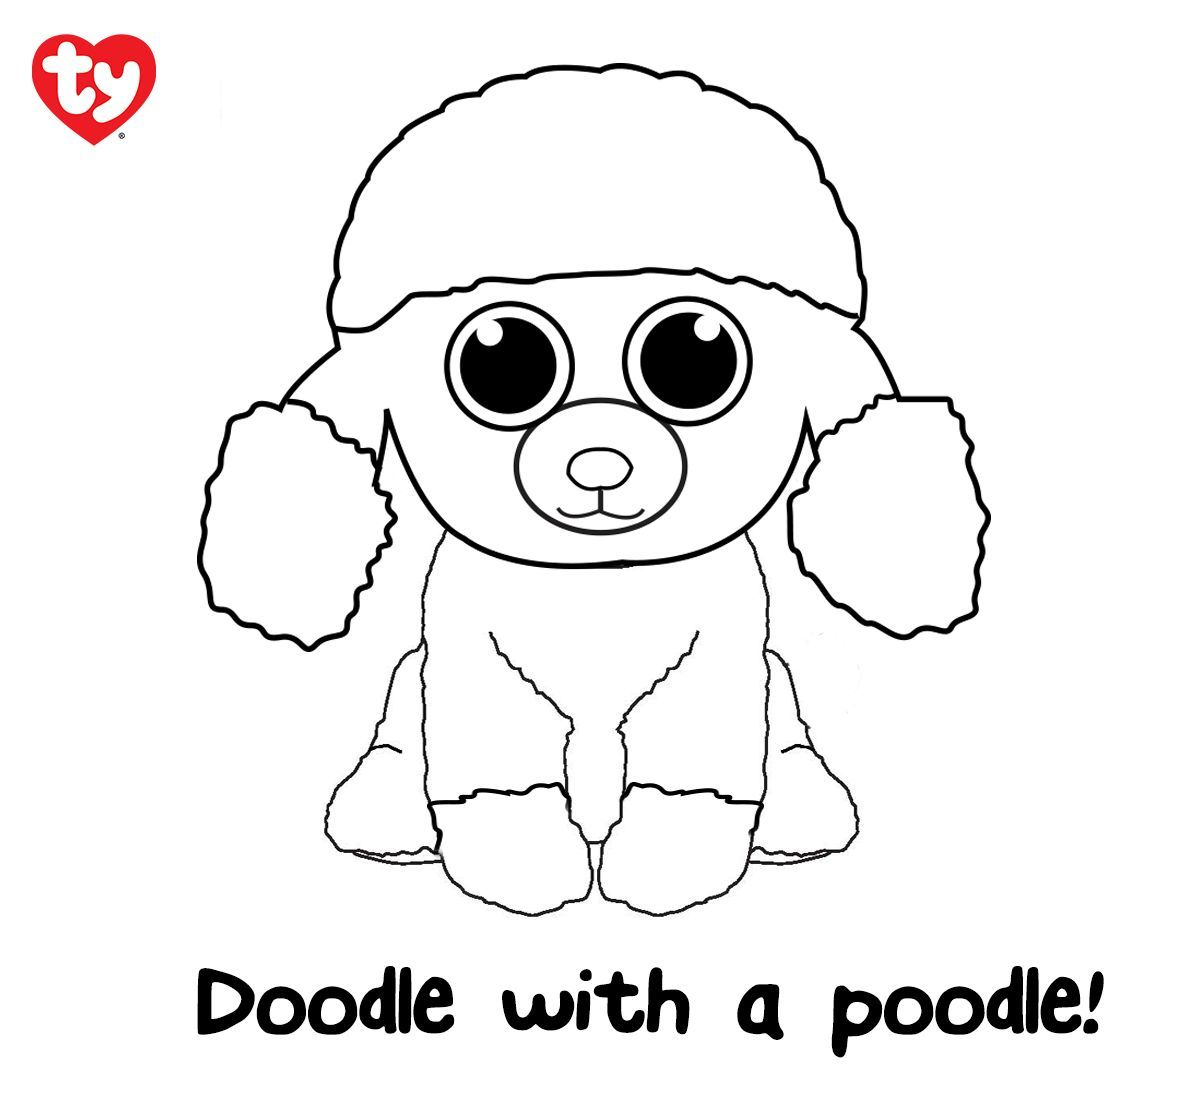 Can You Give Rainbow The Poodle Some Color Http Bit Ly 2moieoq